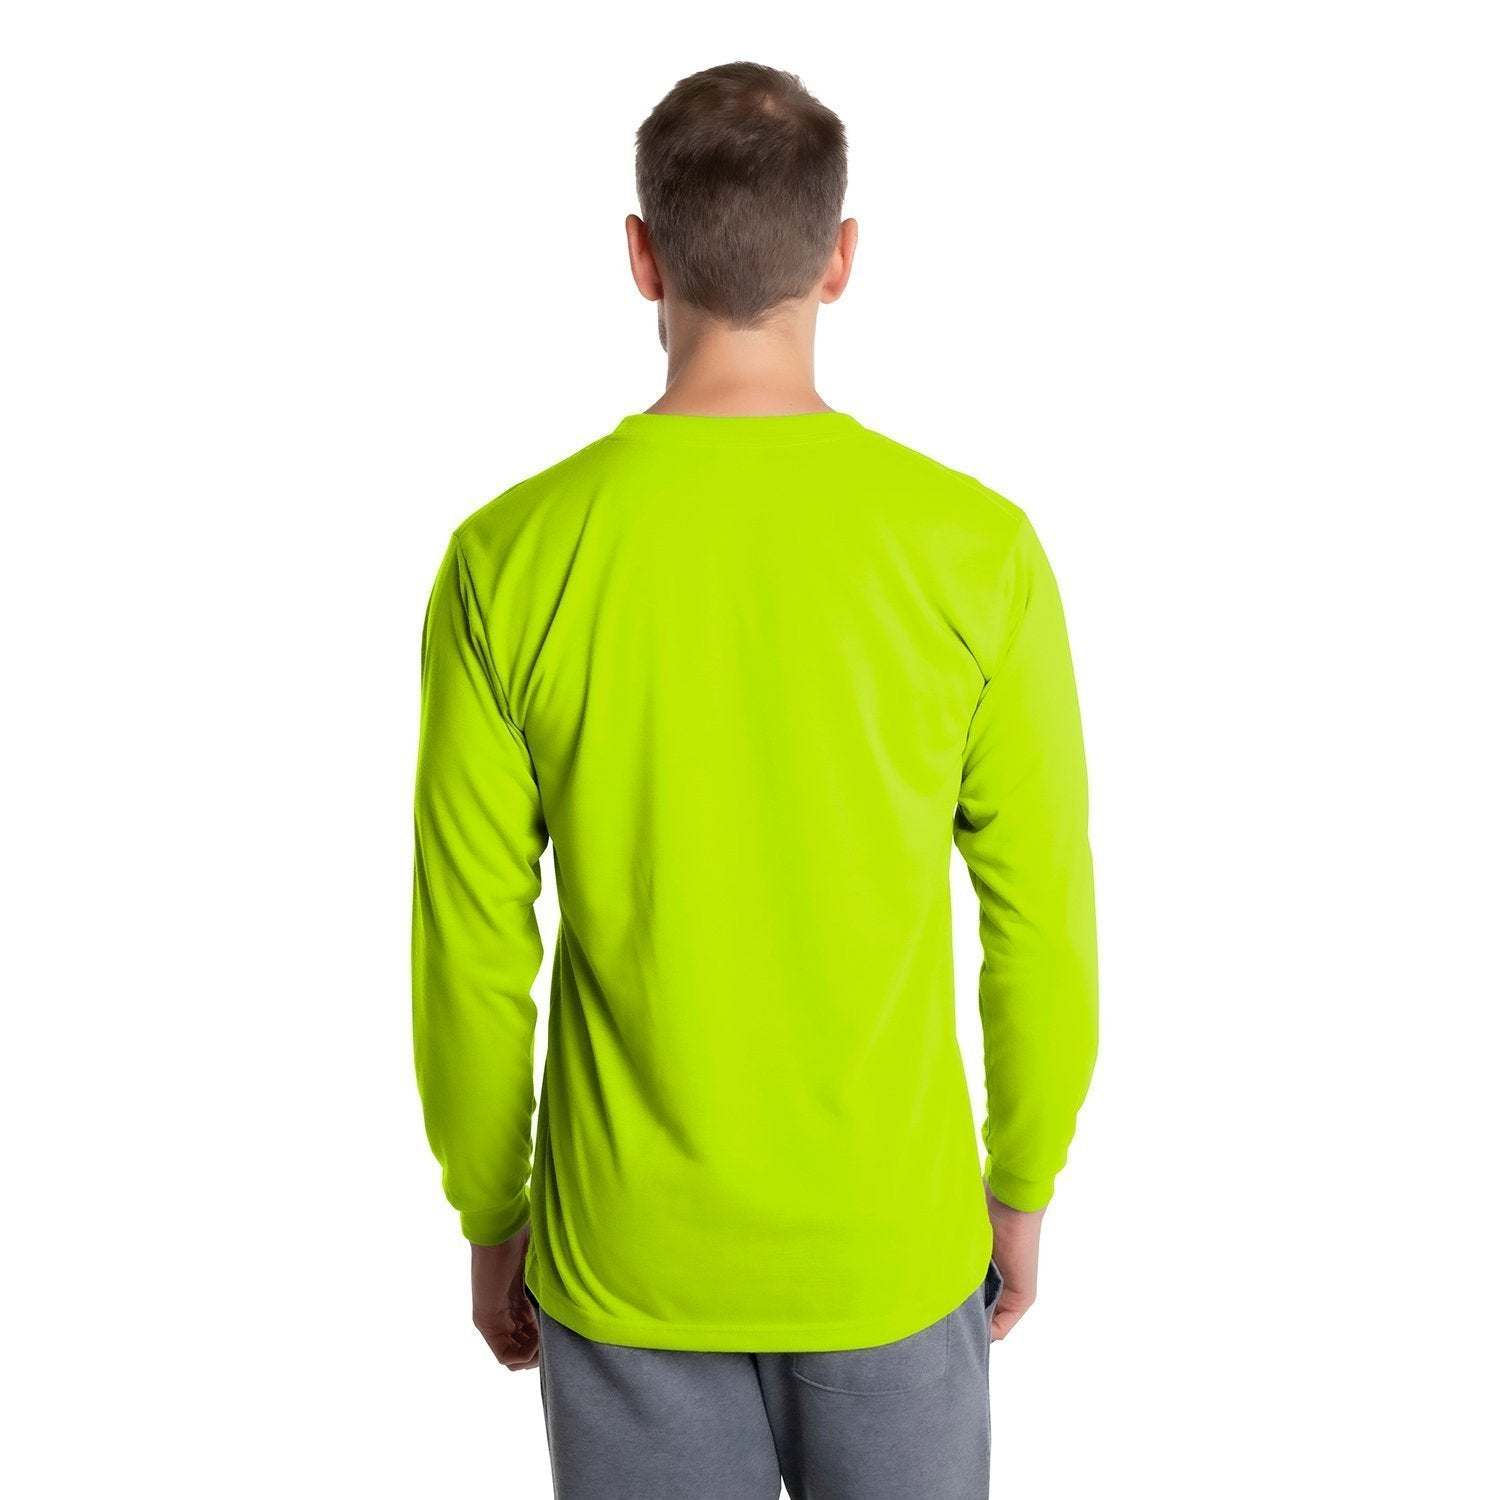 A1SJBLSY Basic Performance Long Sleeve T-Shirt - Safety Yellow